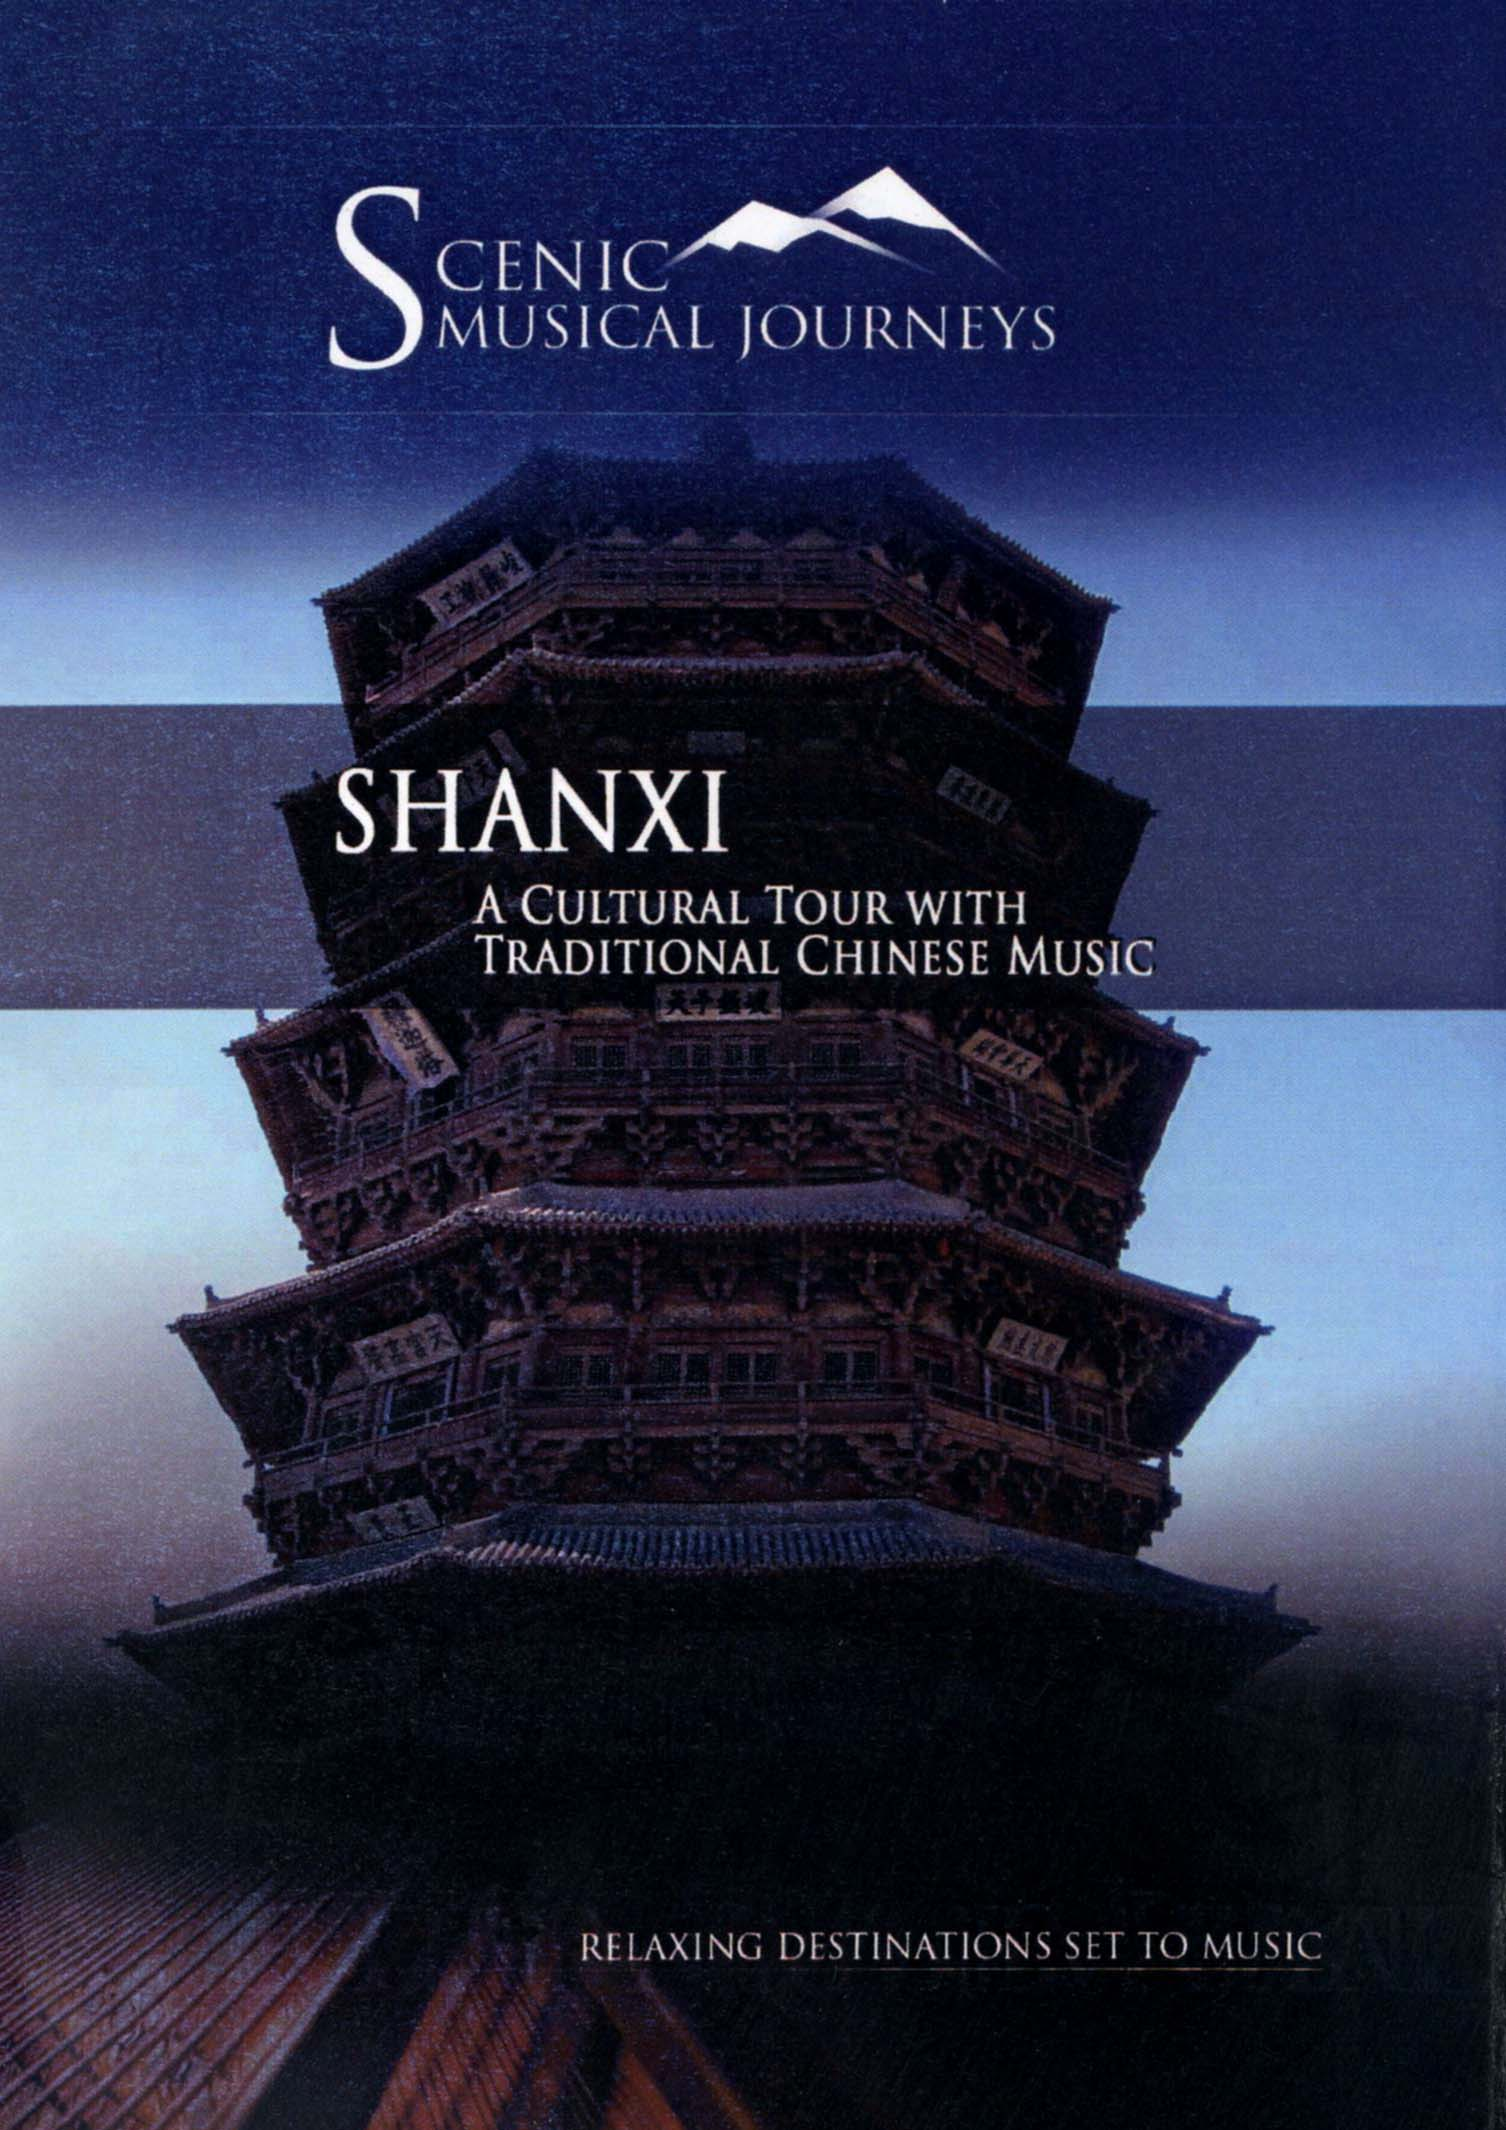 Scenic Musical Journeys: Shanxi - A Cultural Tour With Traditional Chinese Music